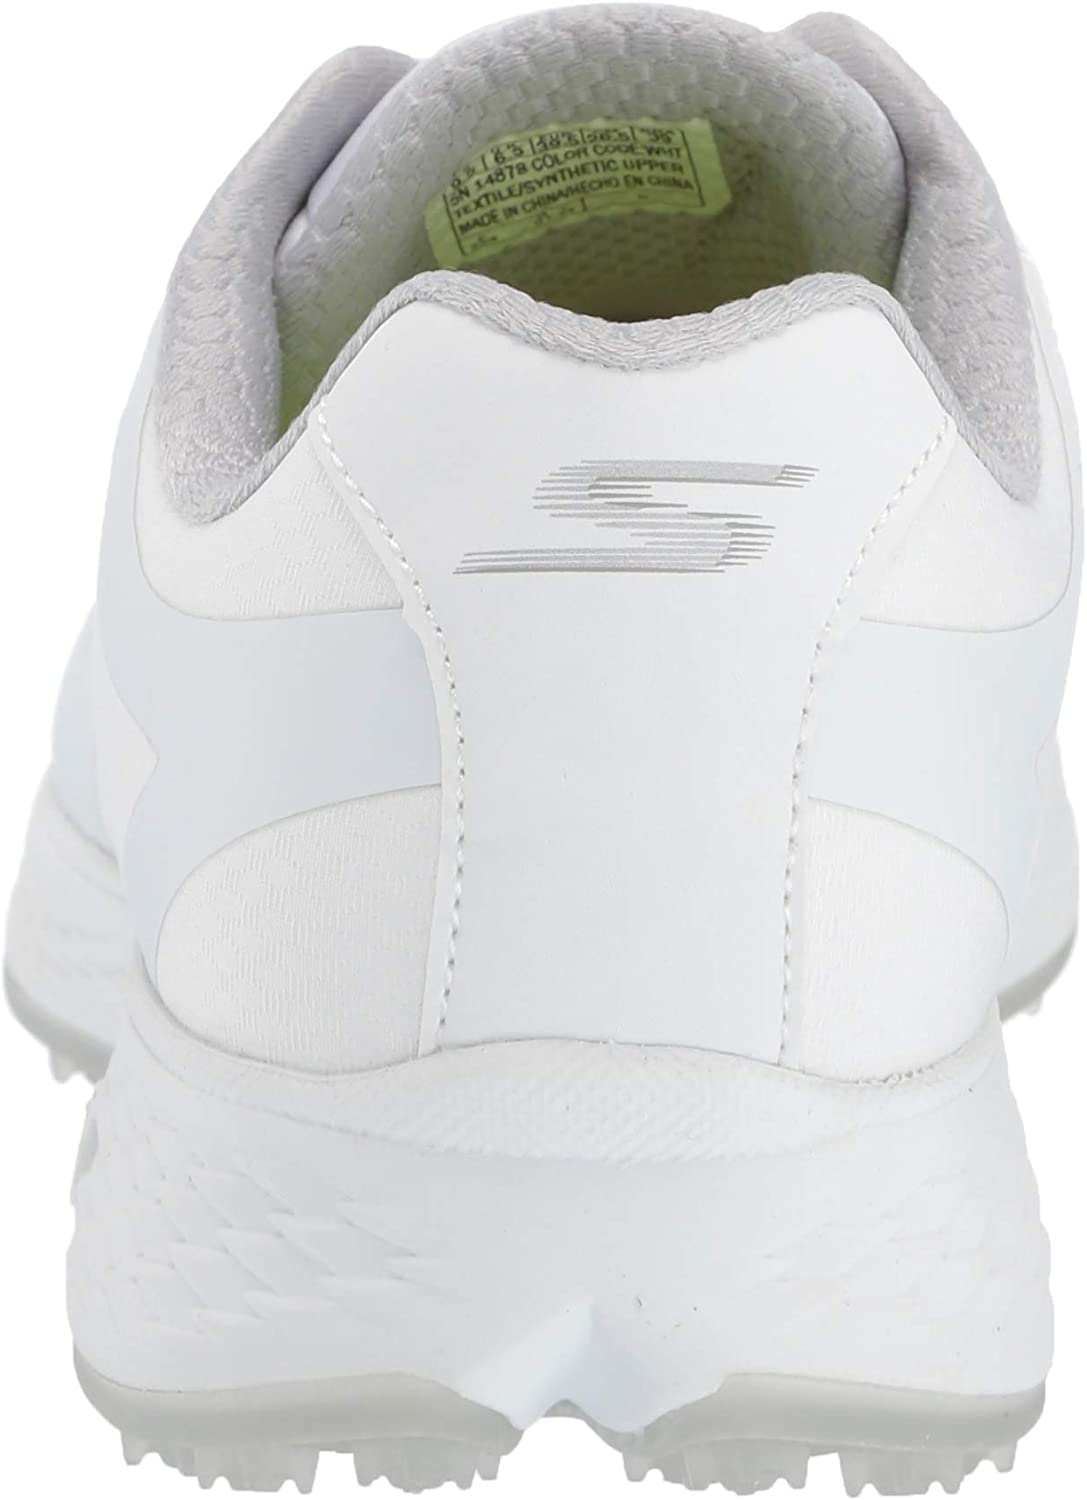 skechers go golf eagle relaxed fit